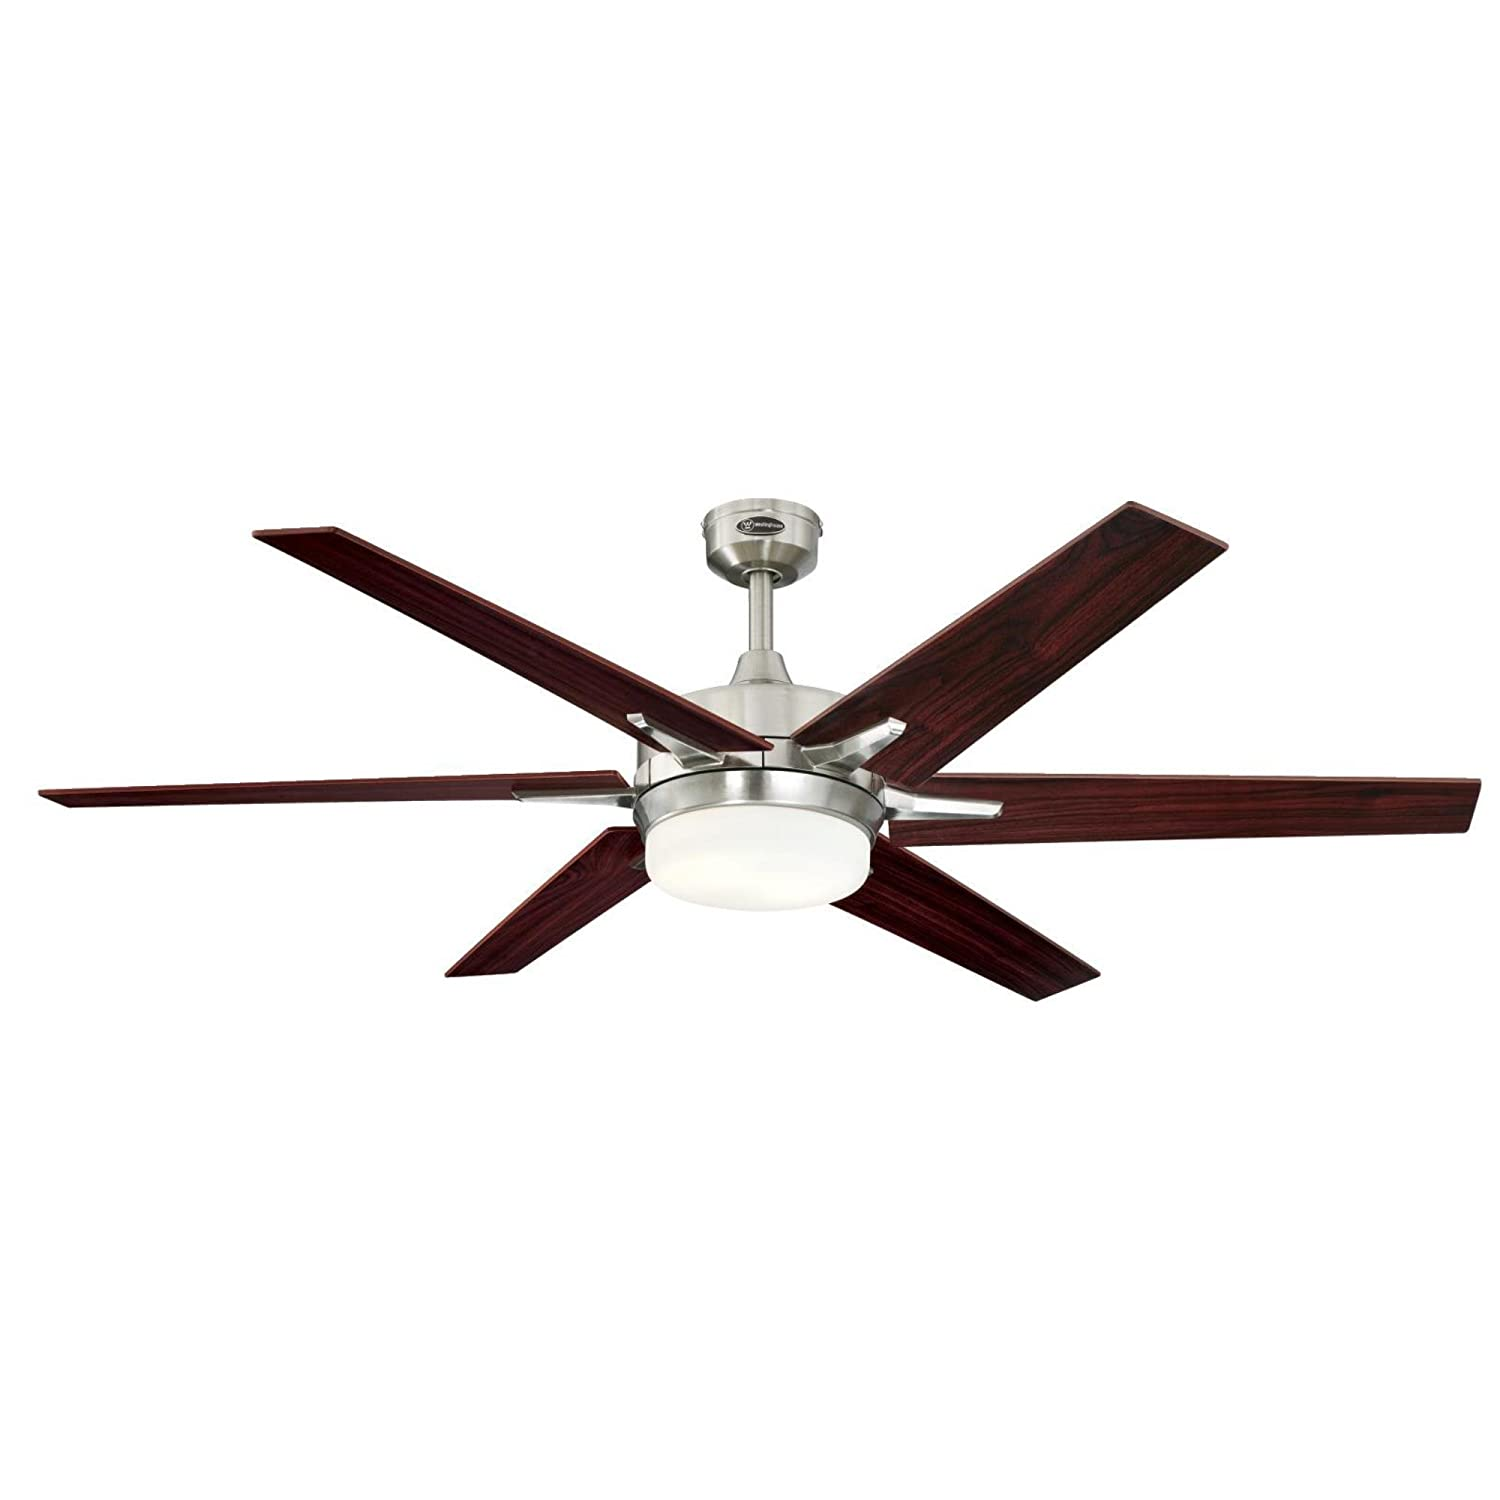 Westinghouse Lighting 7207700 Cayuga 60-inch Brushed Nickel Indoor Ceiling Fan, Dimmable LED Light Kit with Opal Frosted Glass